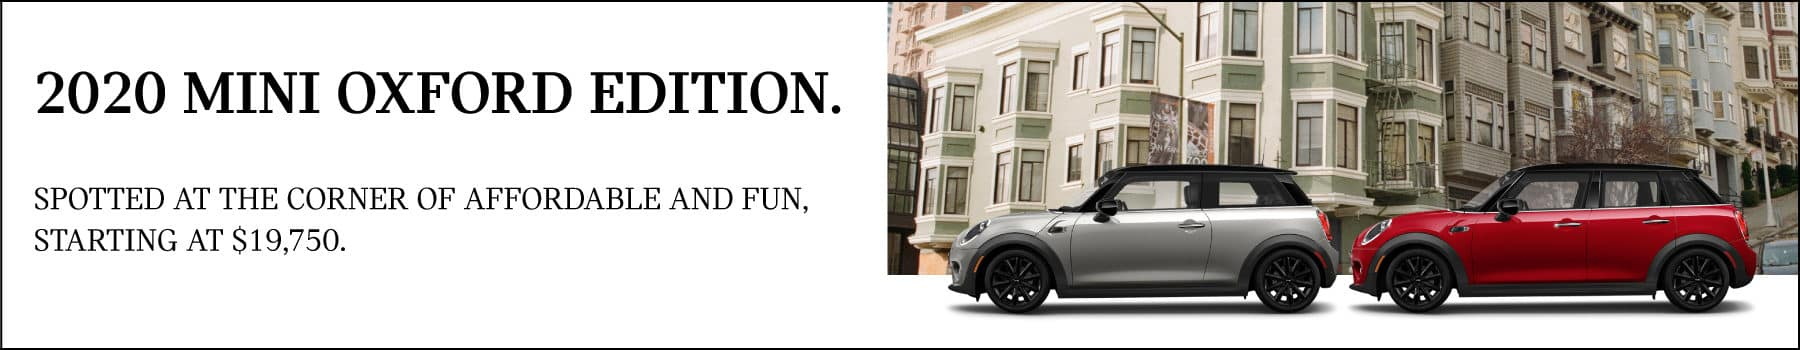 2020 MINI Oxford Edition. Spotted at the corner of affordable and fun, starting at $19,750.